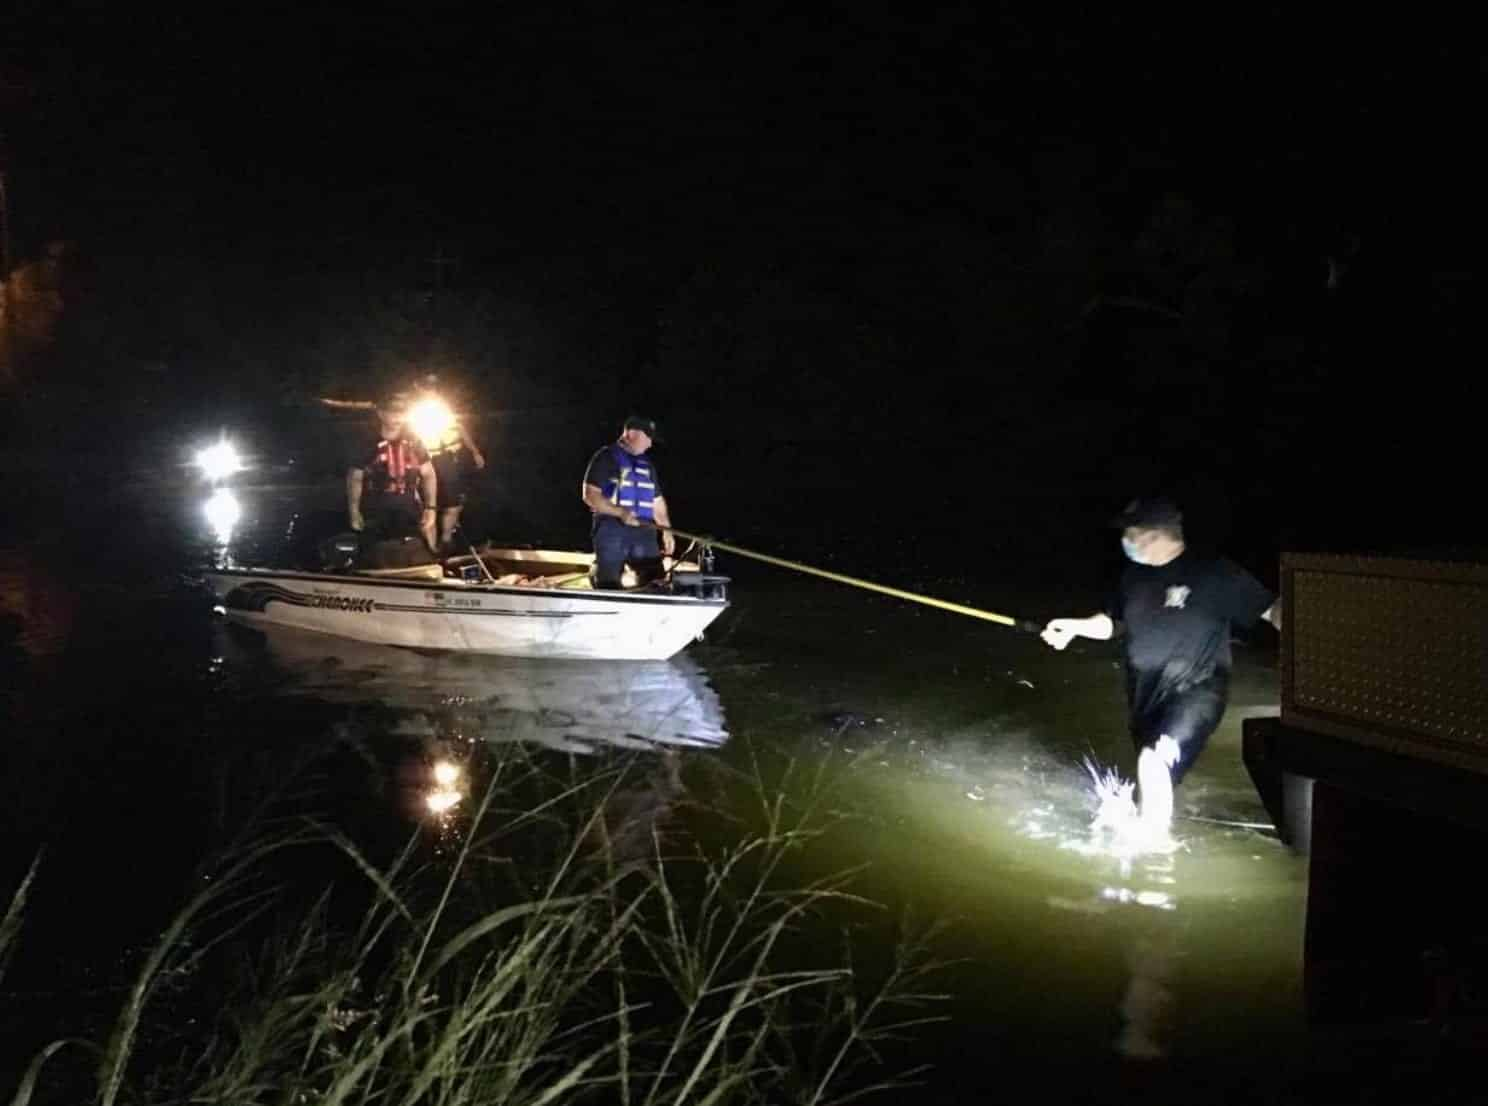 Drone with thermal camera used in search for missing kayaker